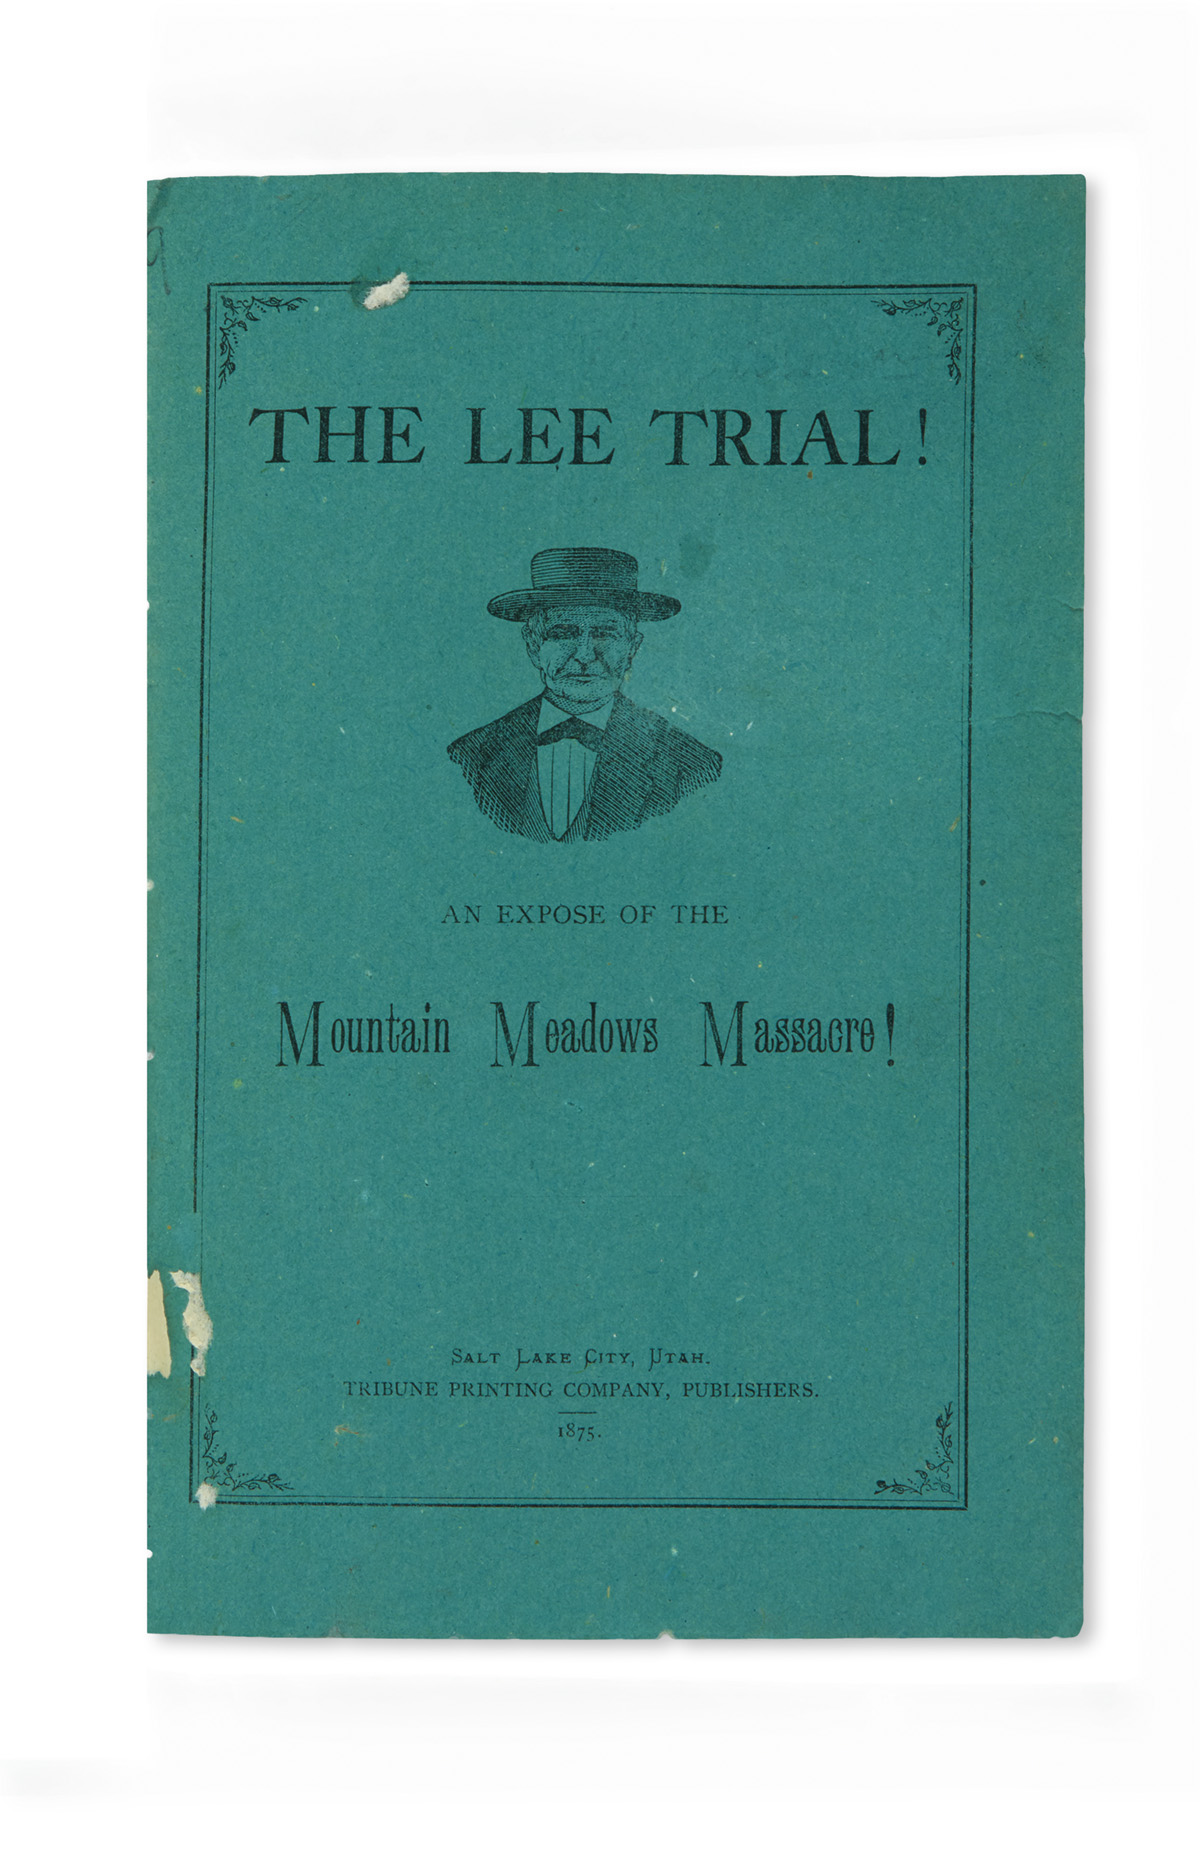 (MORMONS.) The Lee Trial! An Exposé of the Mountain Meadows Massacre.